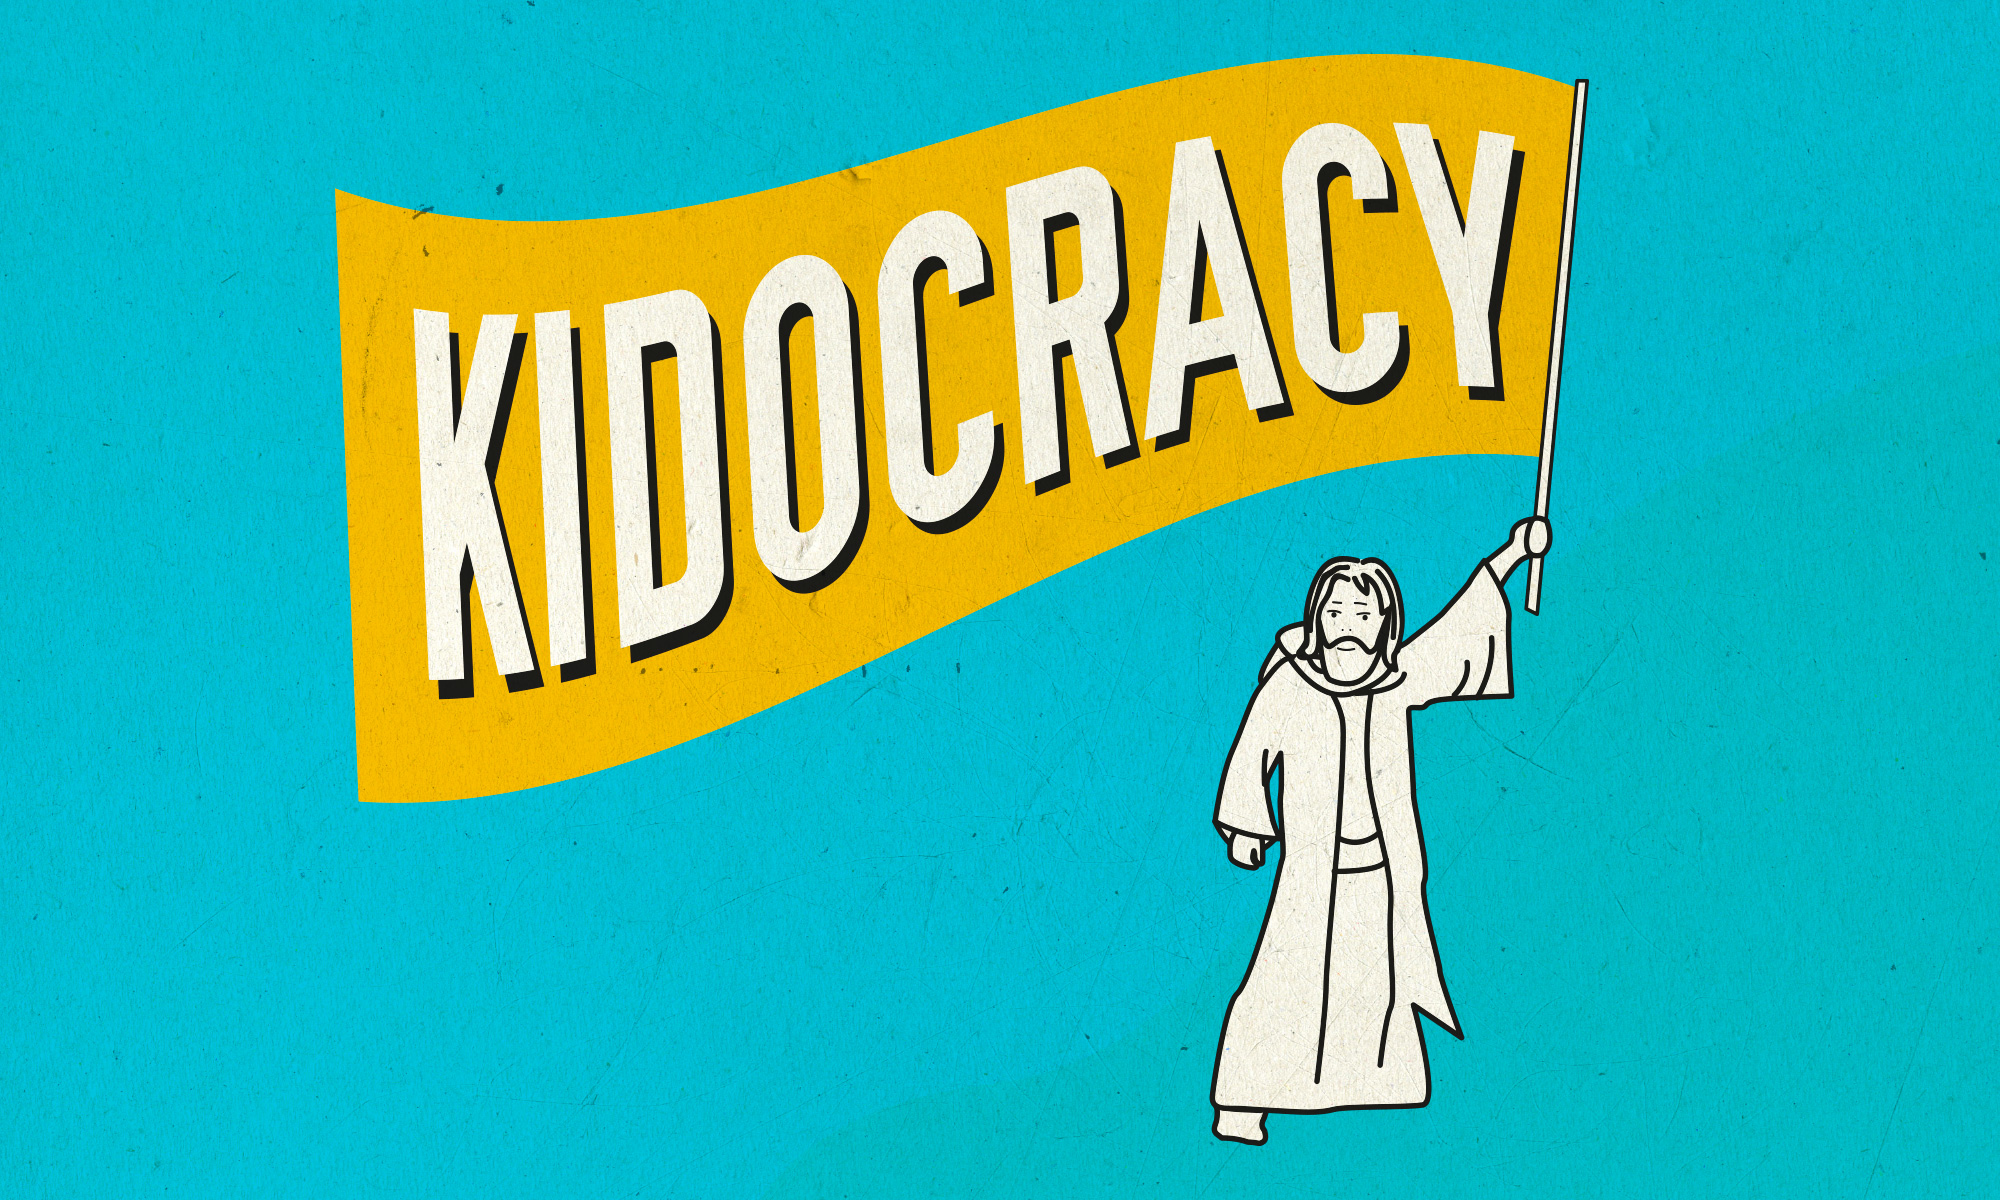 Image of Keith Farnan: Kidocracy